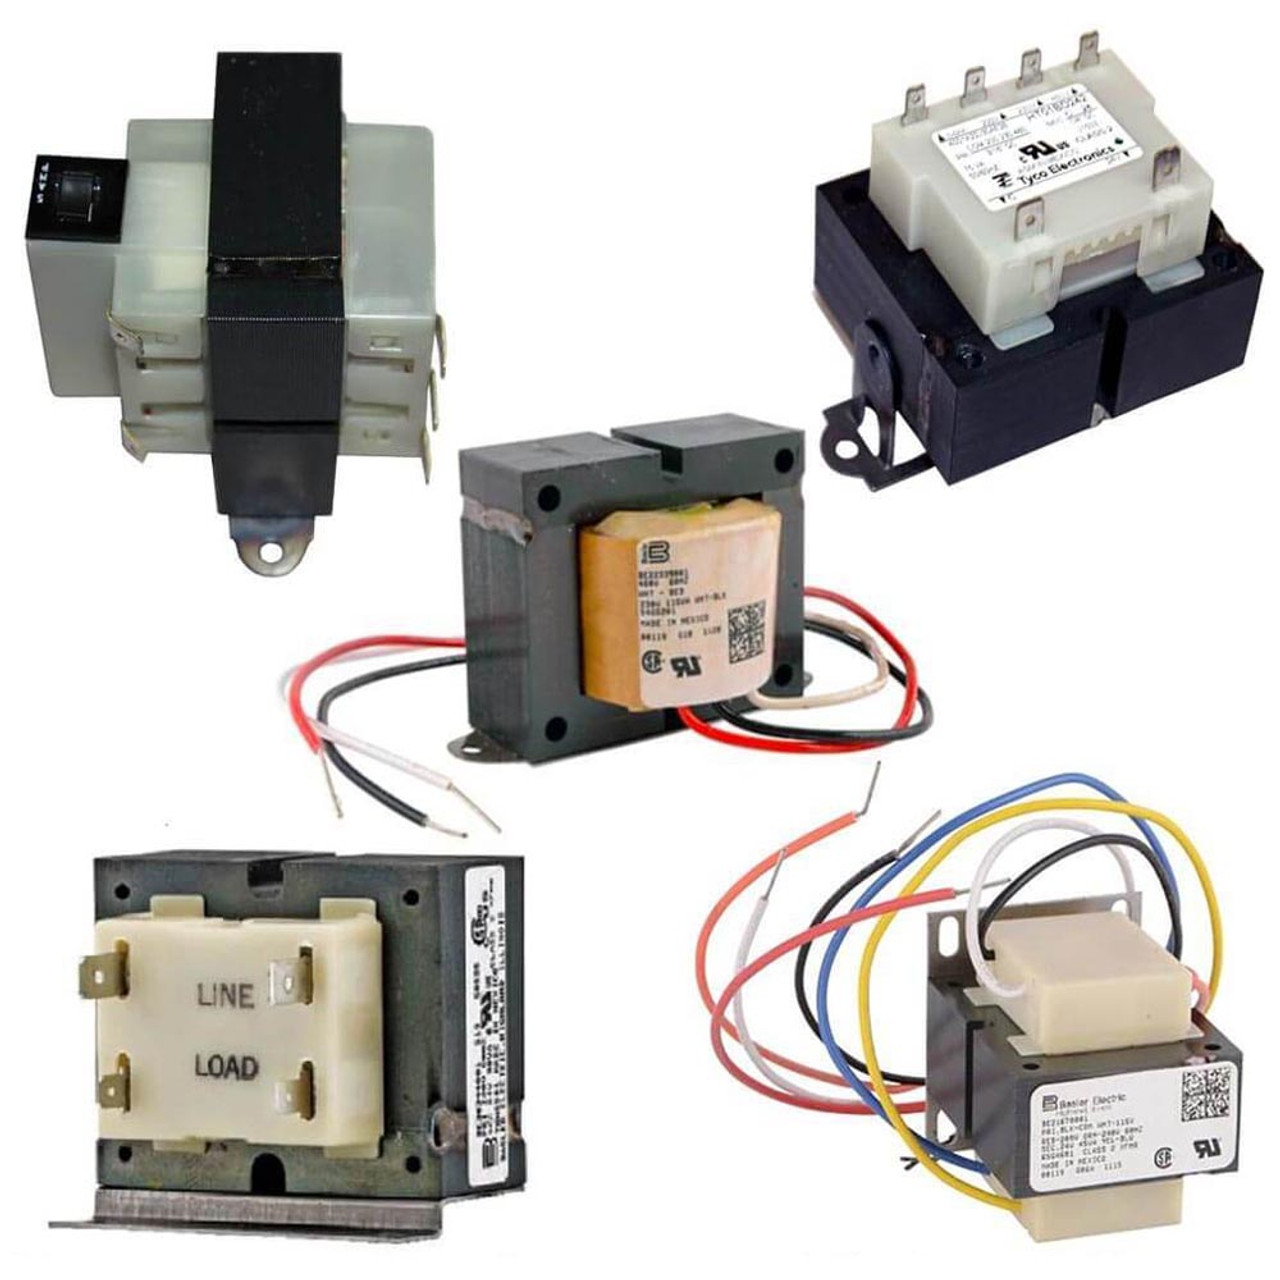 208 24 Volt Transformer Wiring how to wire a transformer ... Packard Contactor C B Wiring Diagram on